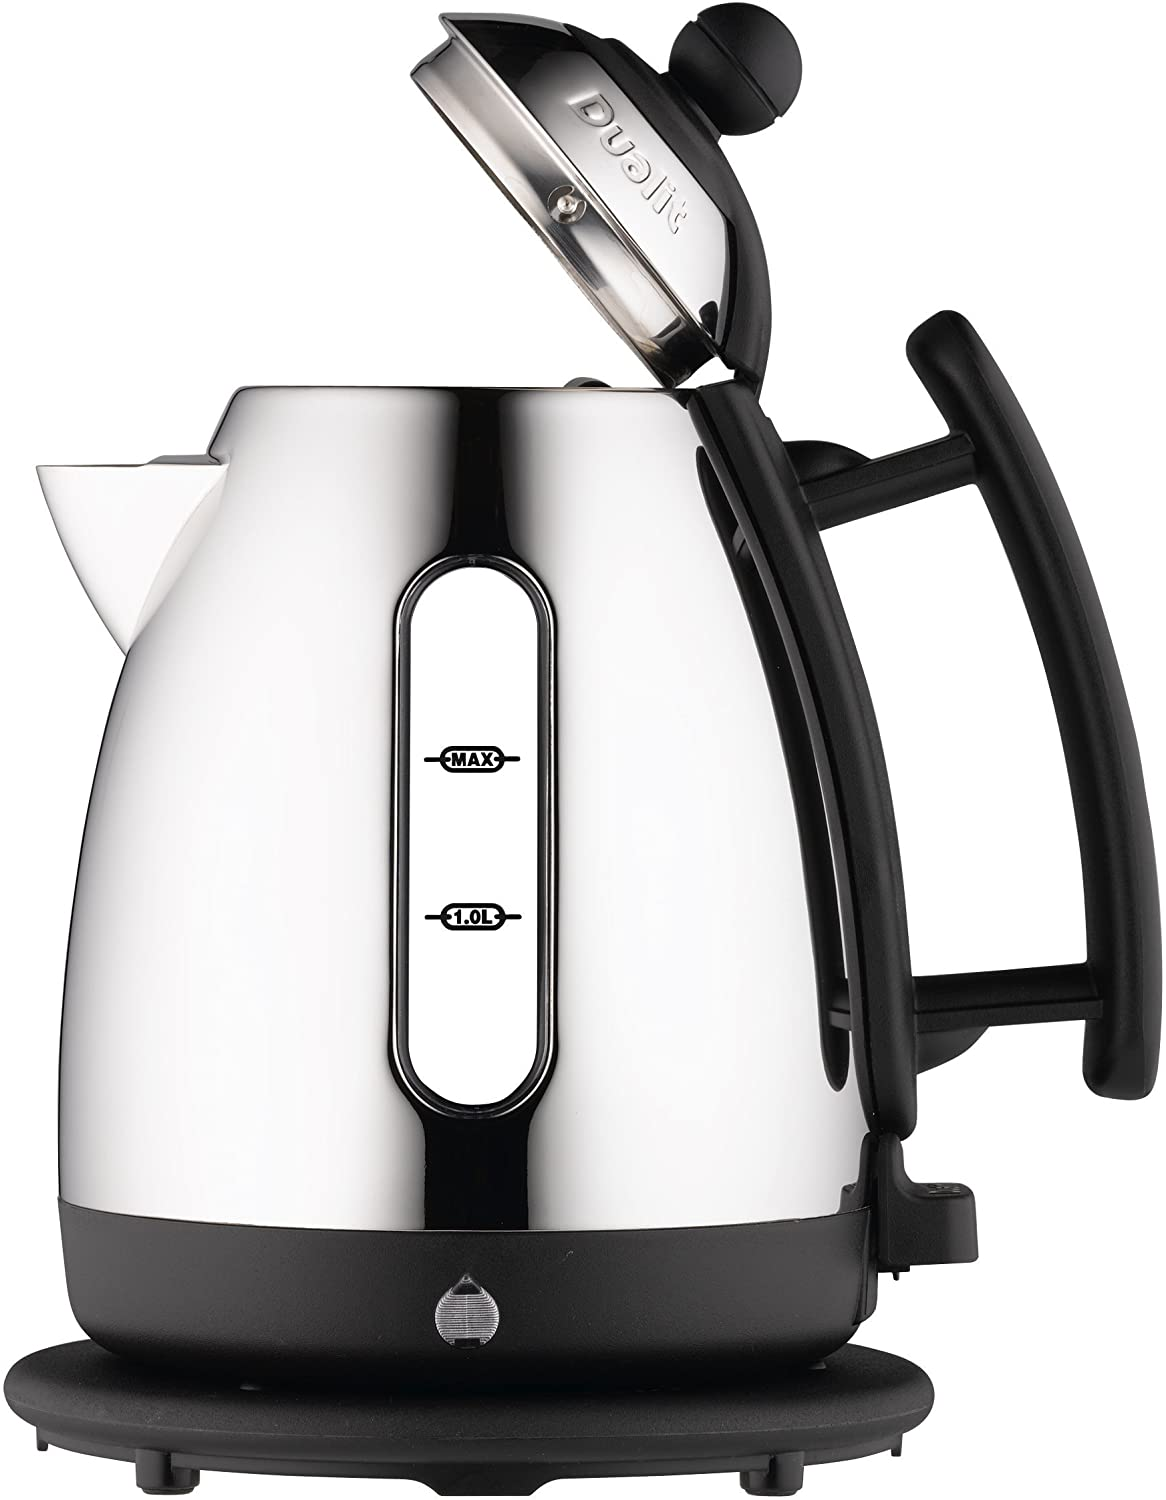 Dualit Cordless 6-Cup Jug Kettle Review